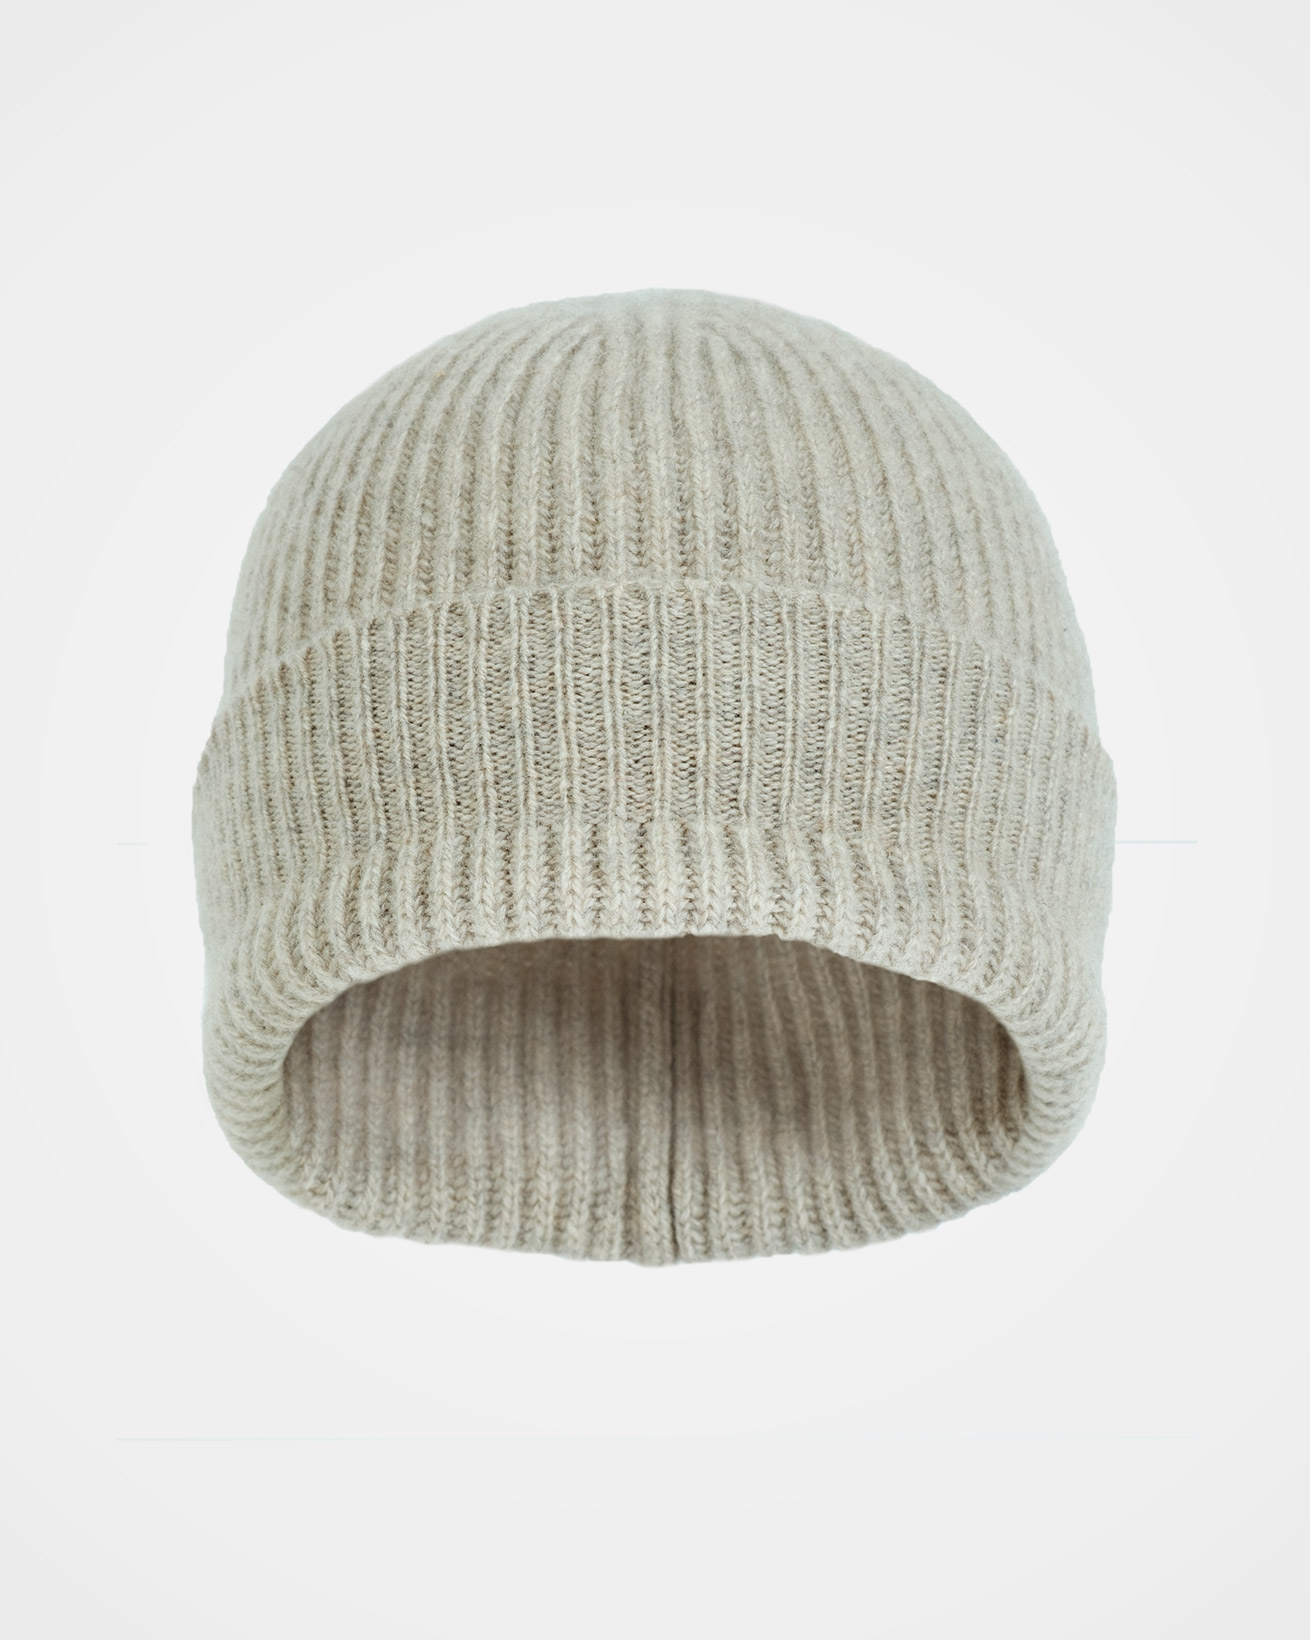 7631_eco-cashmere-cable-beanie_oatmeal_front.jpg